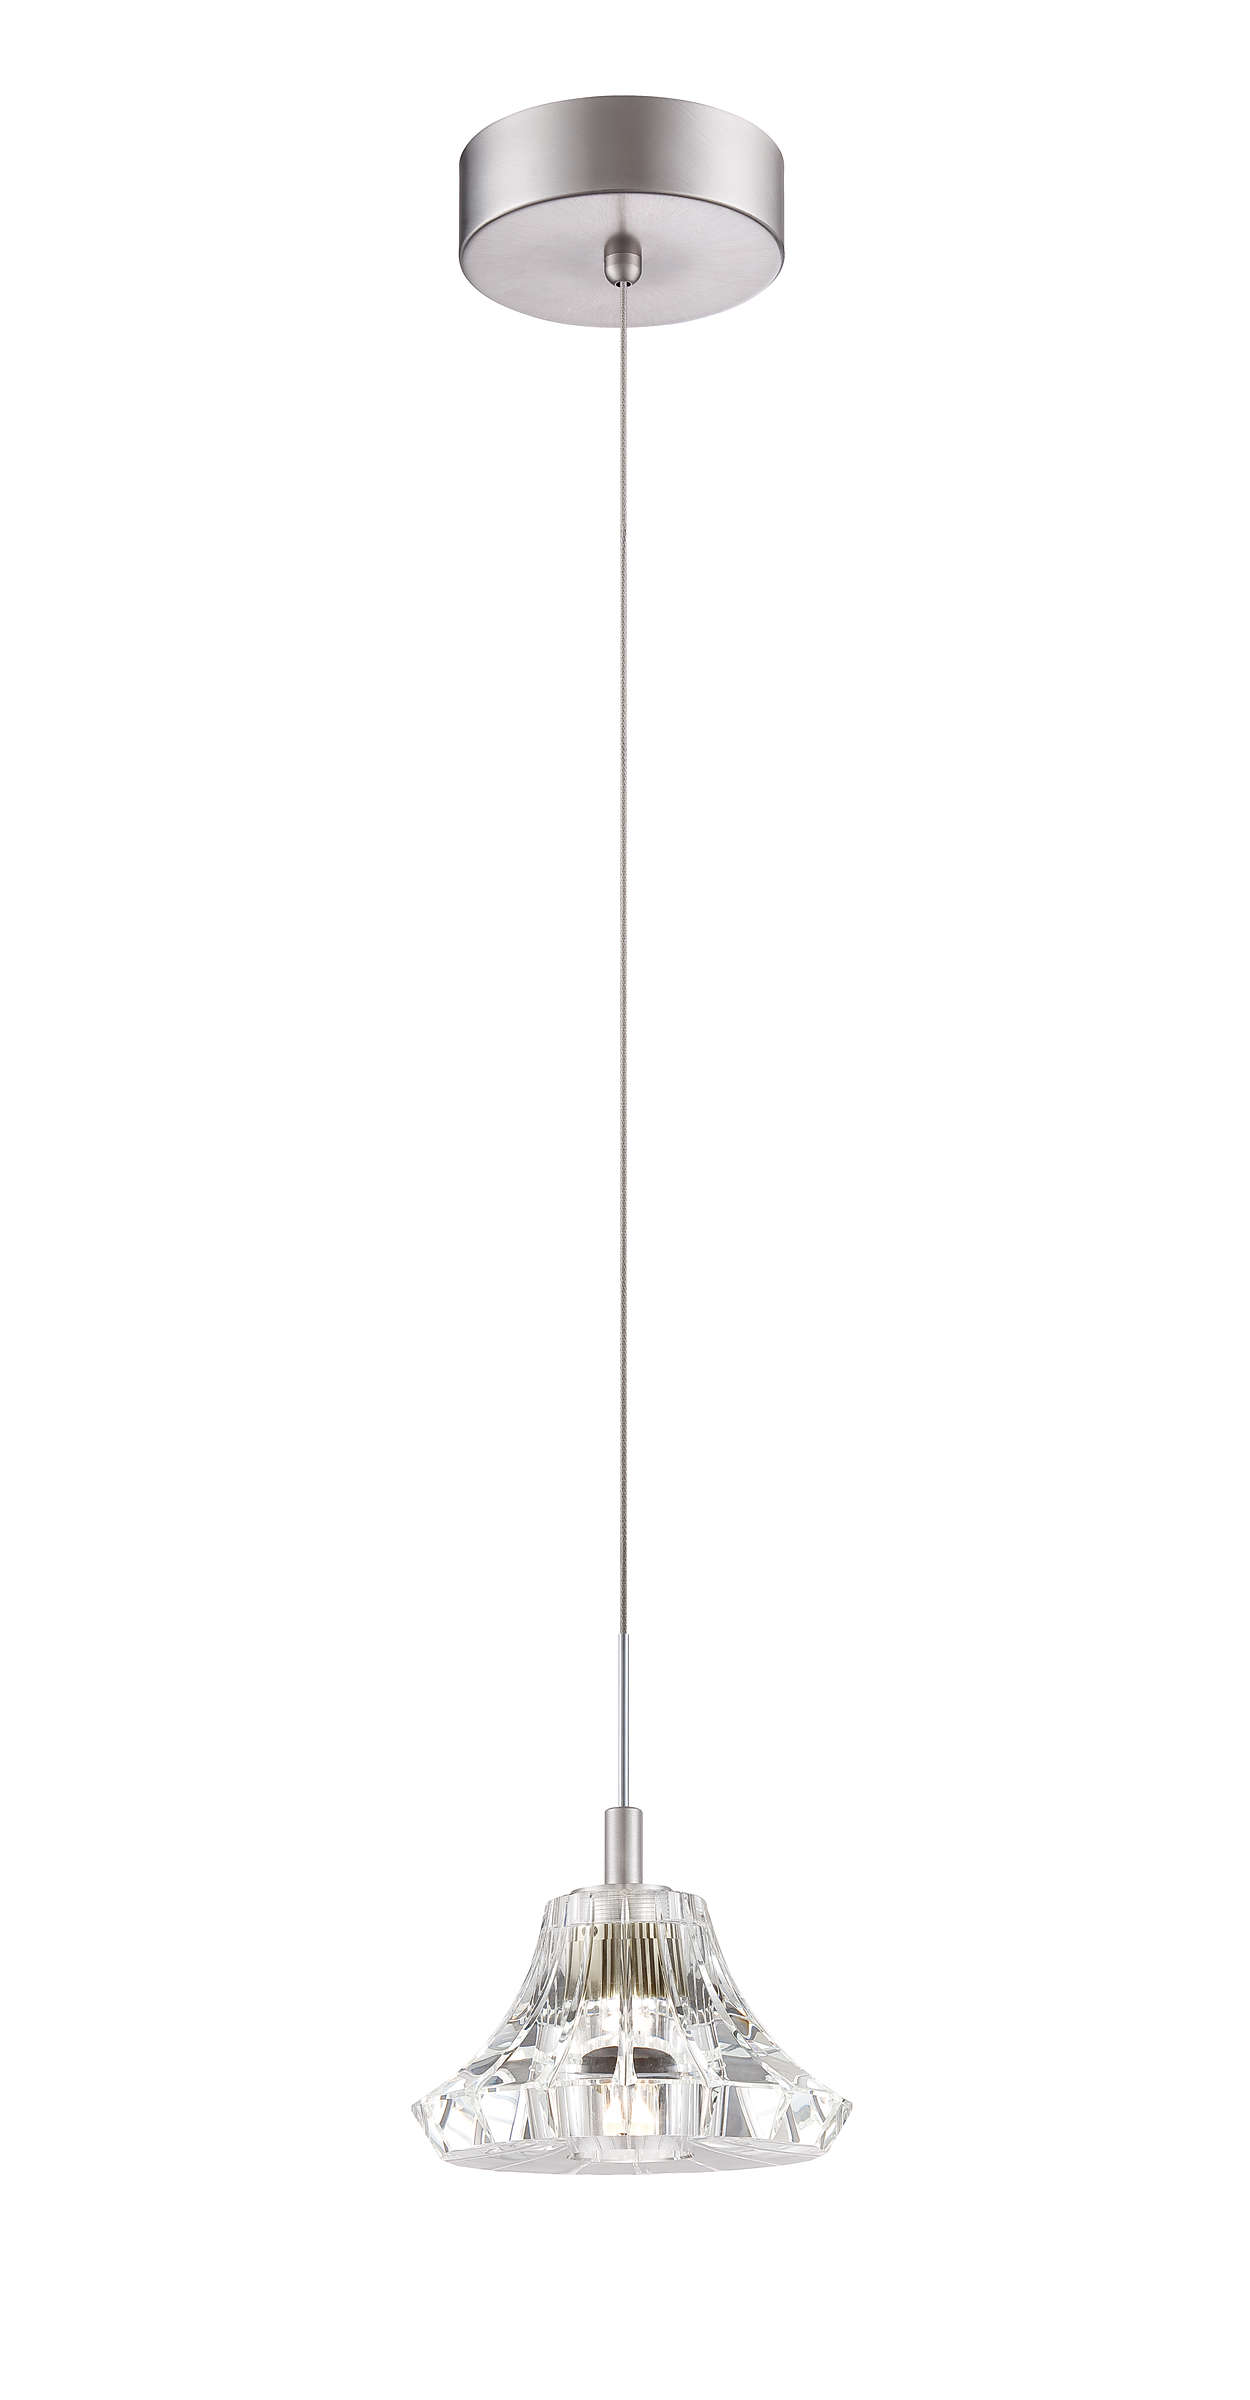 Liz 1-light LED pendant in Satin Nickel finish